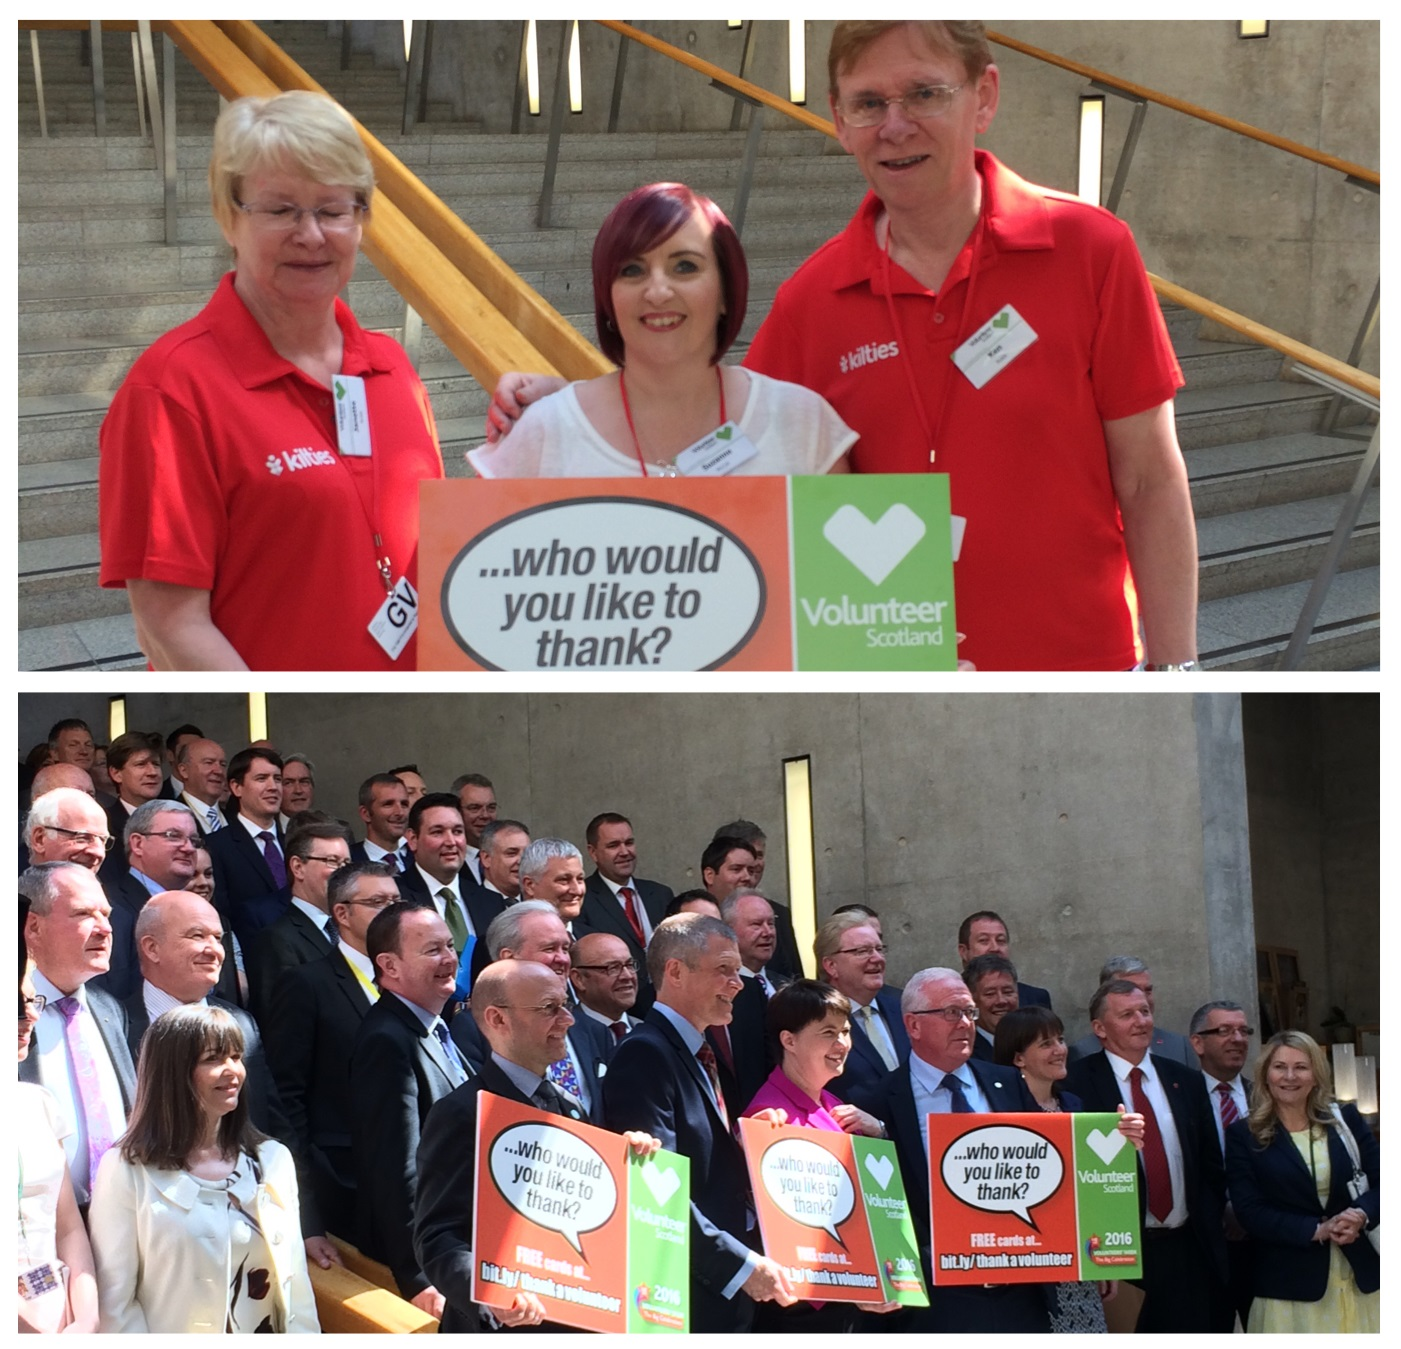 Suzanne at the Scottish parliament with Volunteer Scotland